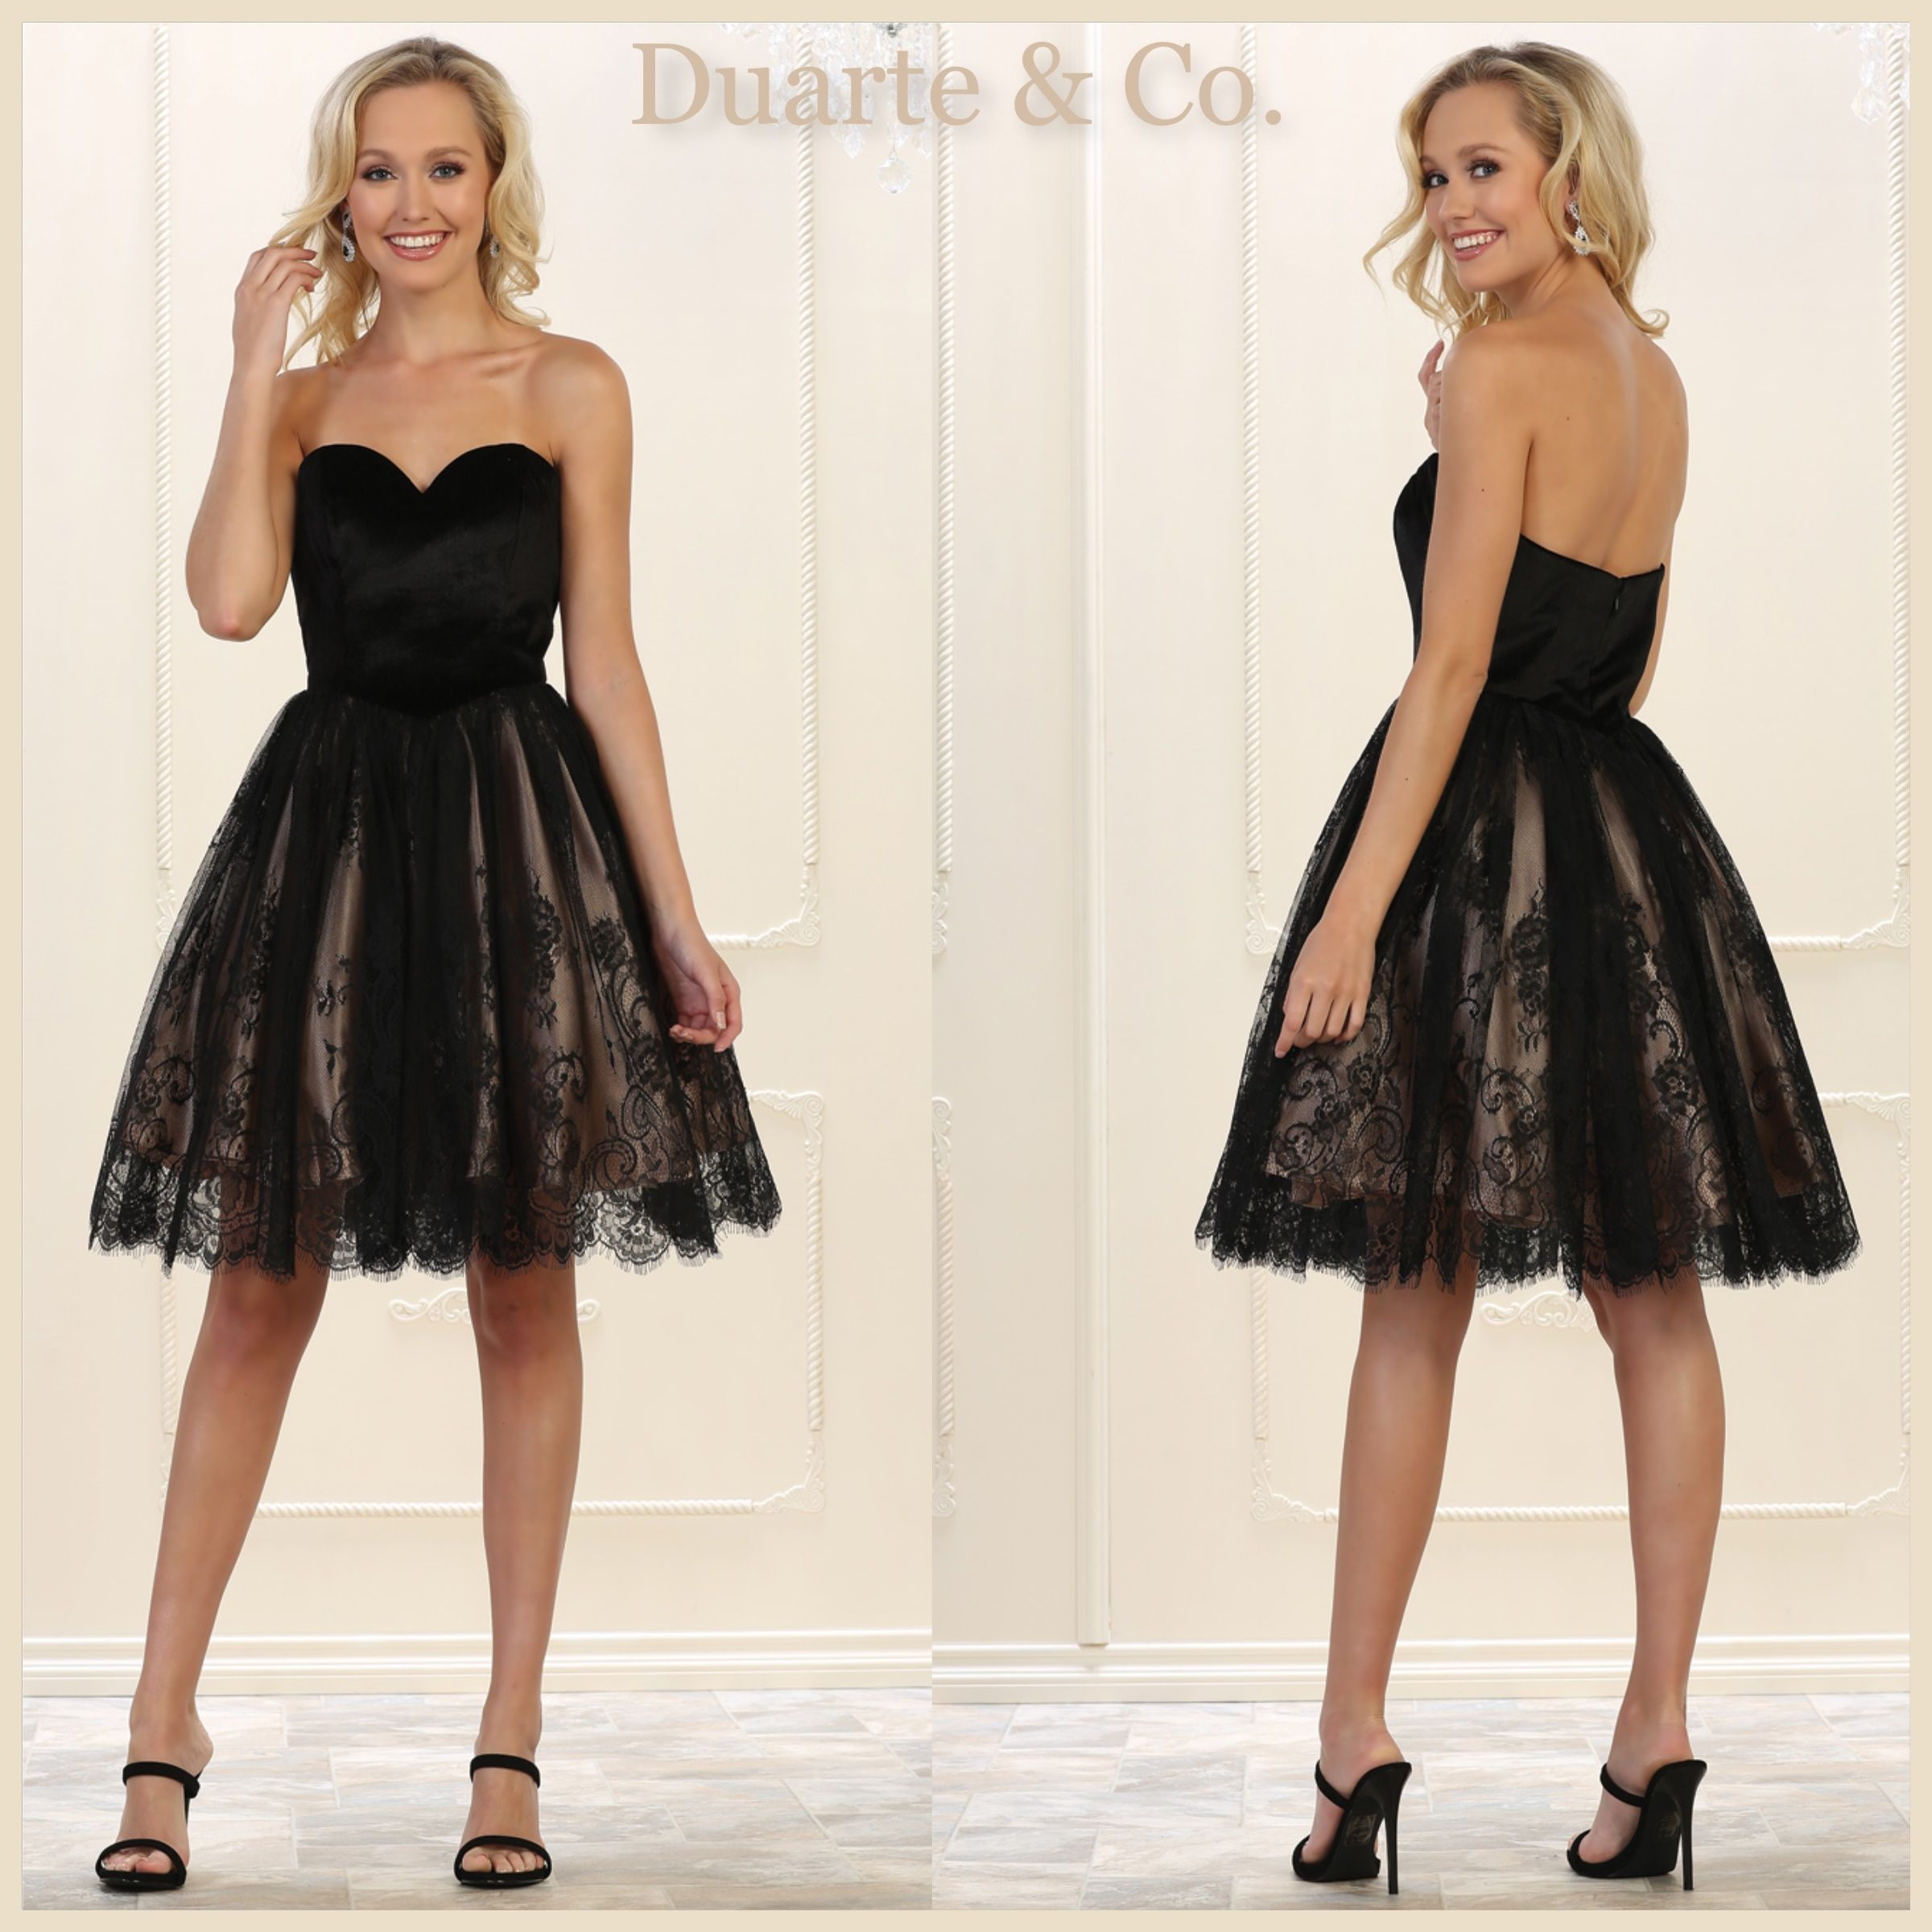 LC215592  120.00 Short Strapless Velvet   Lace Party Dress Comes in 3  colors and is available in sizes 4-16. f7d401b5d745